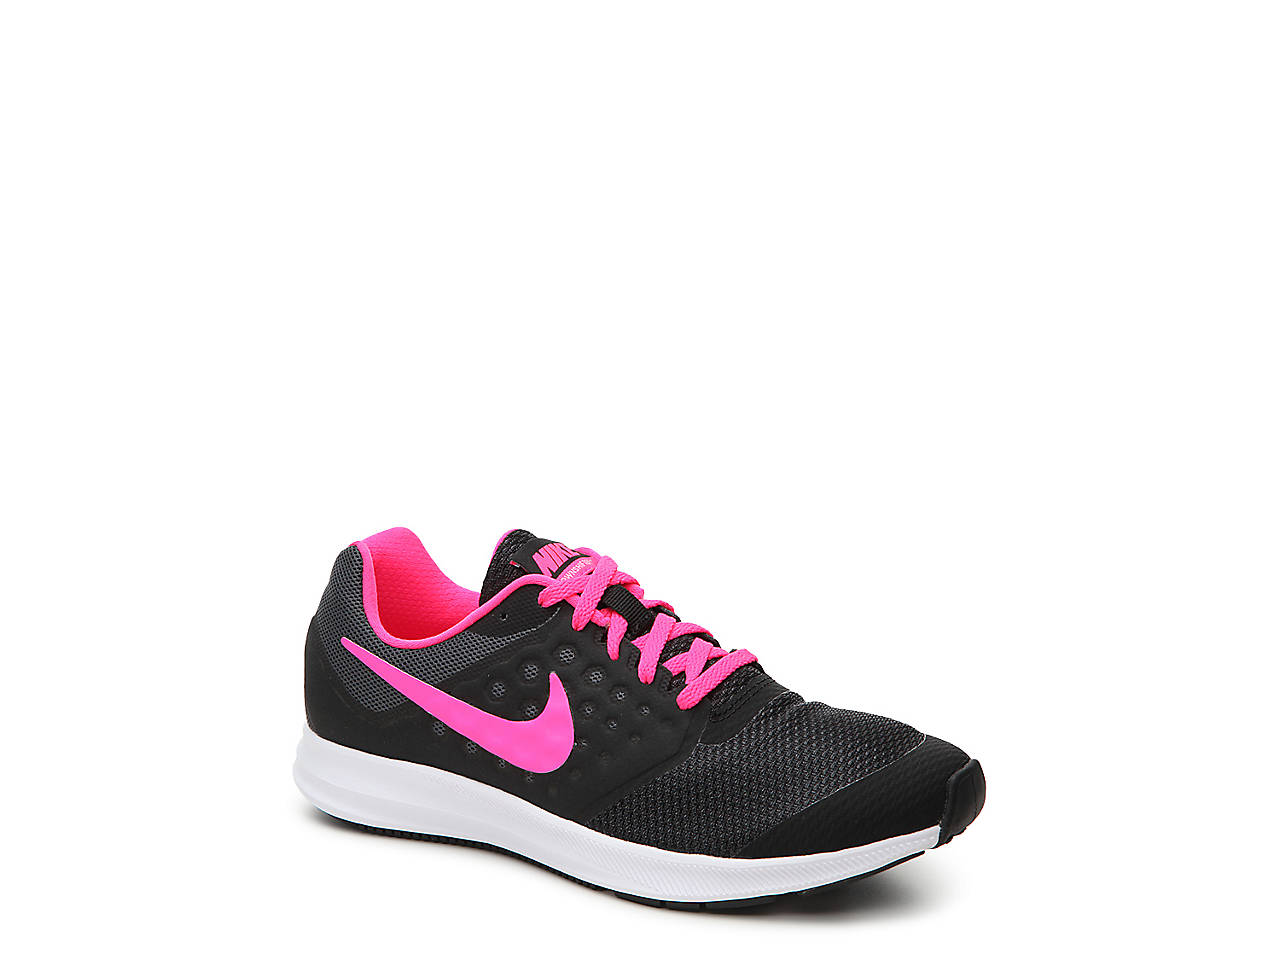 ef0a78ad93899 Nike Downshifter 7 Youth Running Shoe Kids Shoes